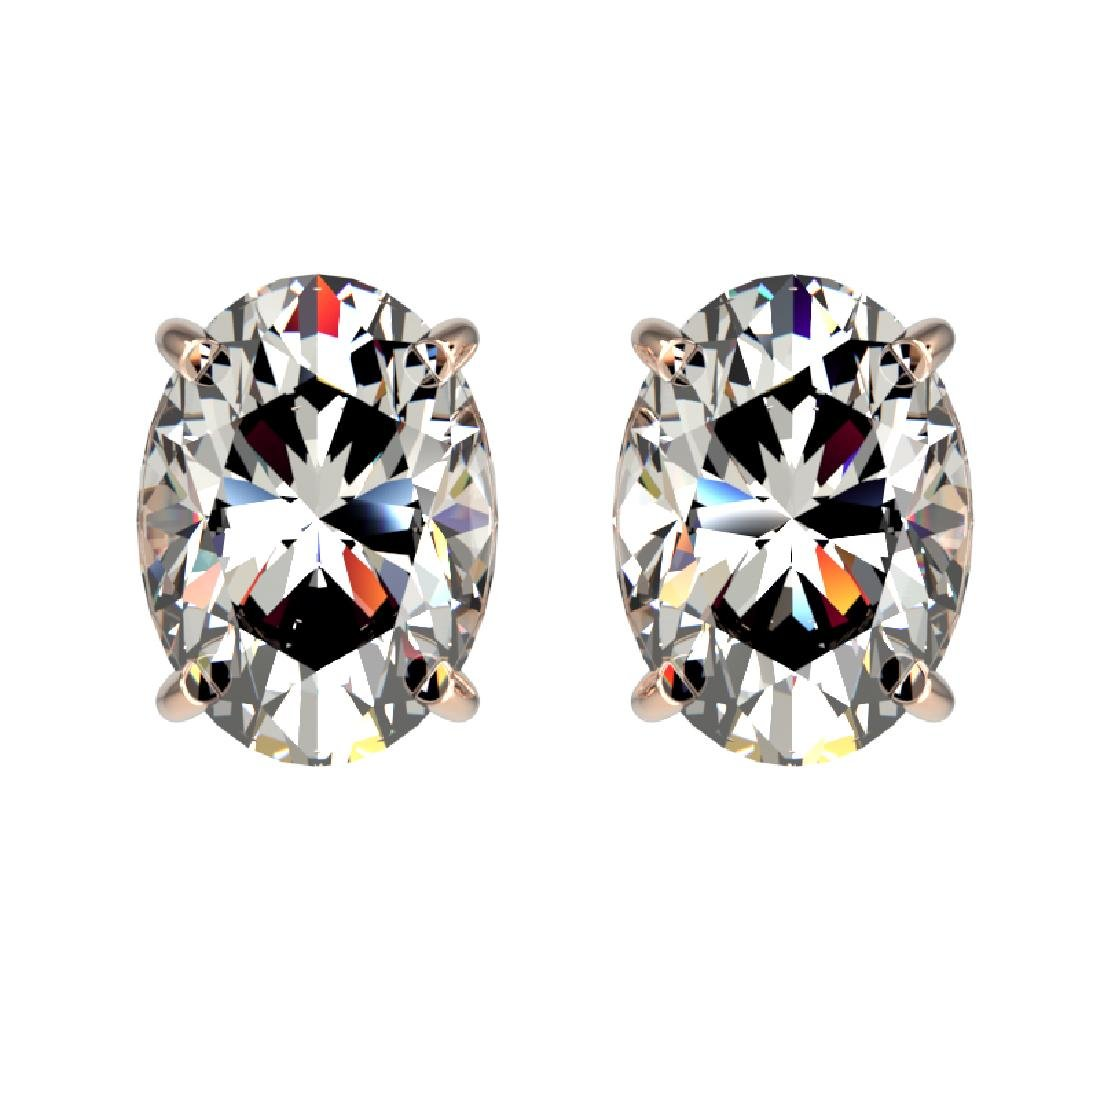 2 CTW Certified VS/SI Quality Oval Diamond Solitaire